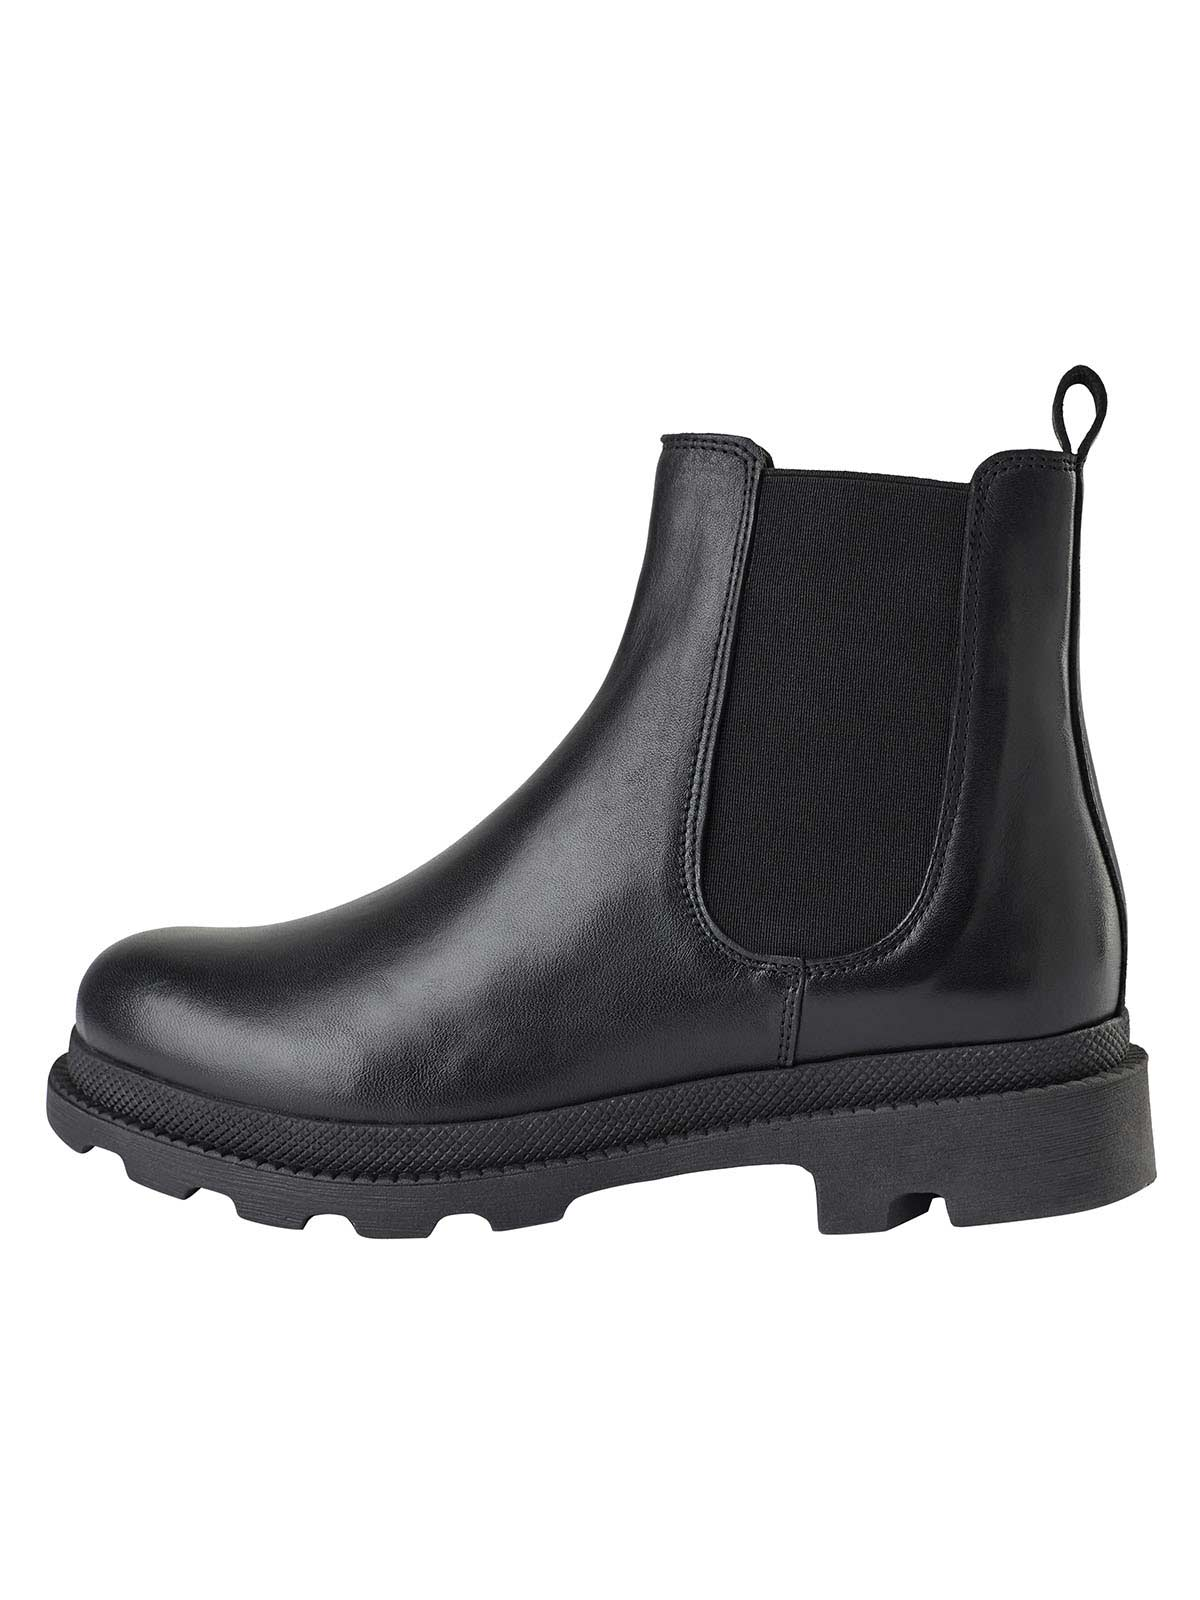 BIACYAN Leather Boot - Black - Revenge Utrecht